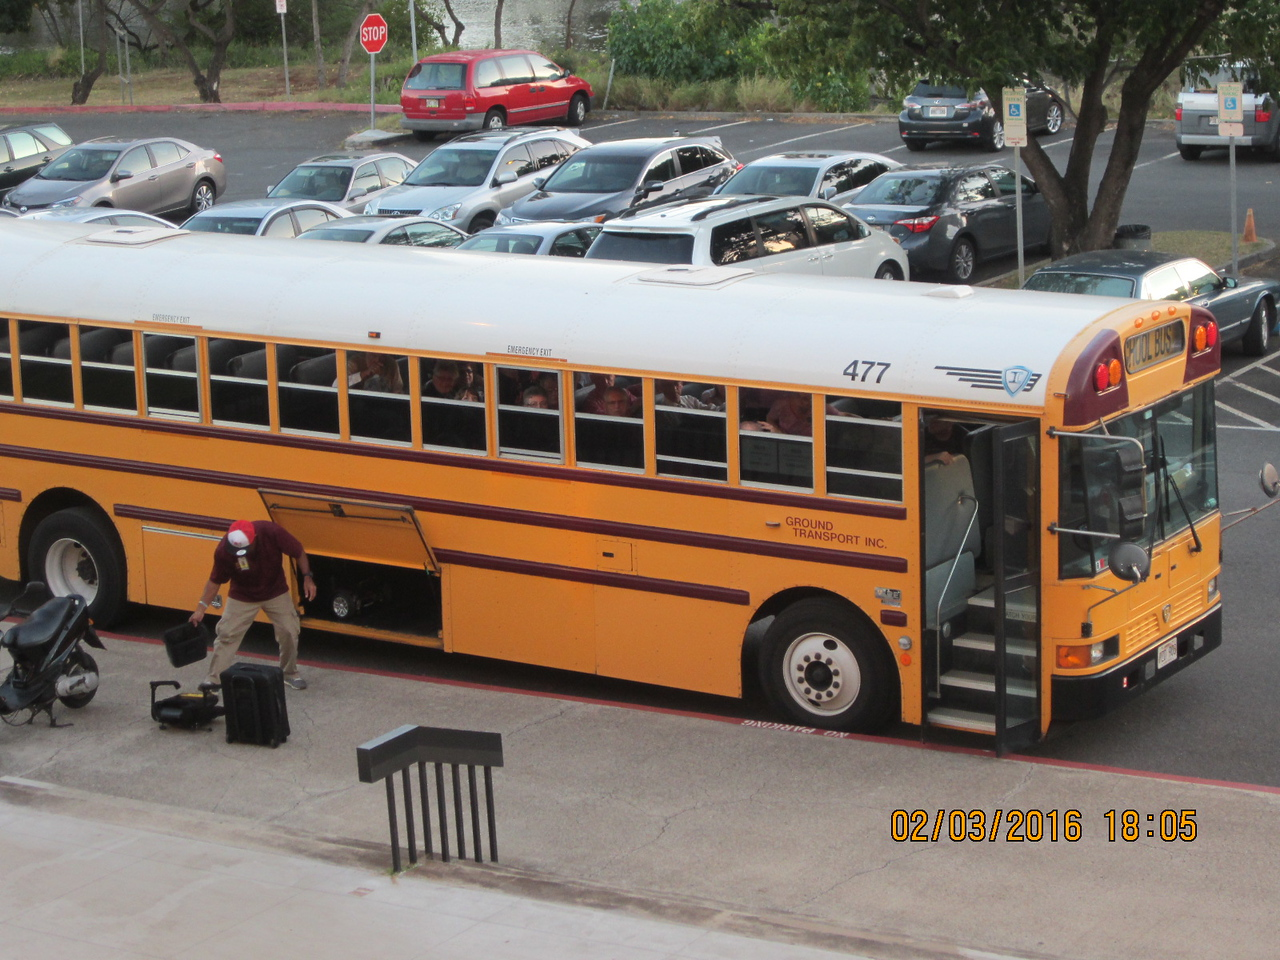 There is the bus brought the dancers